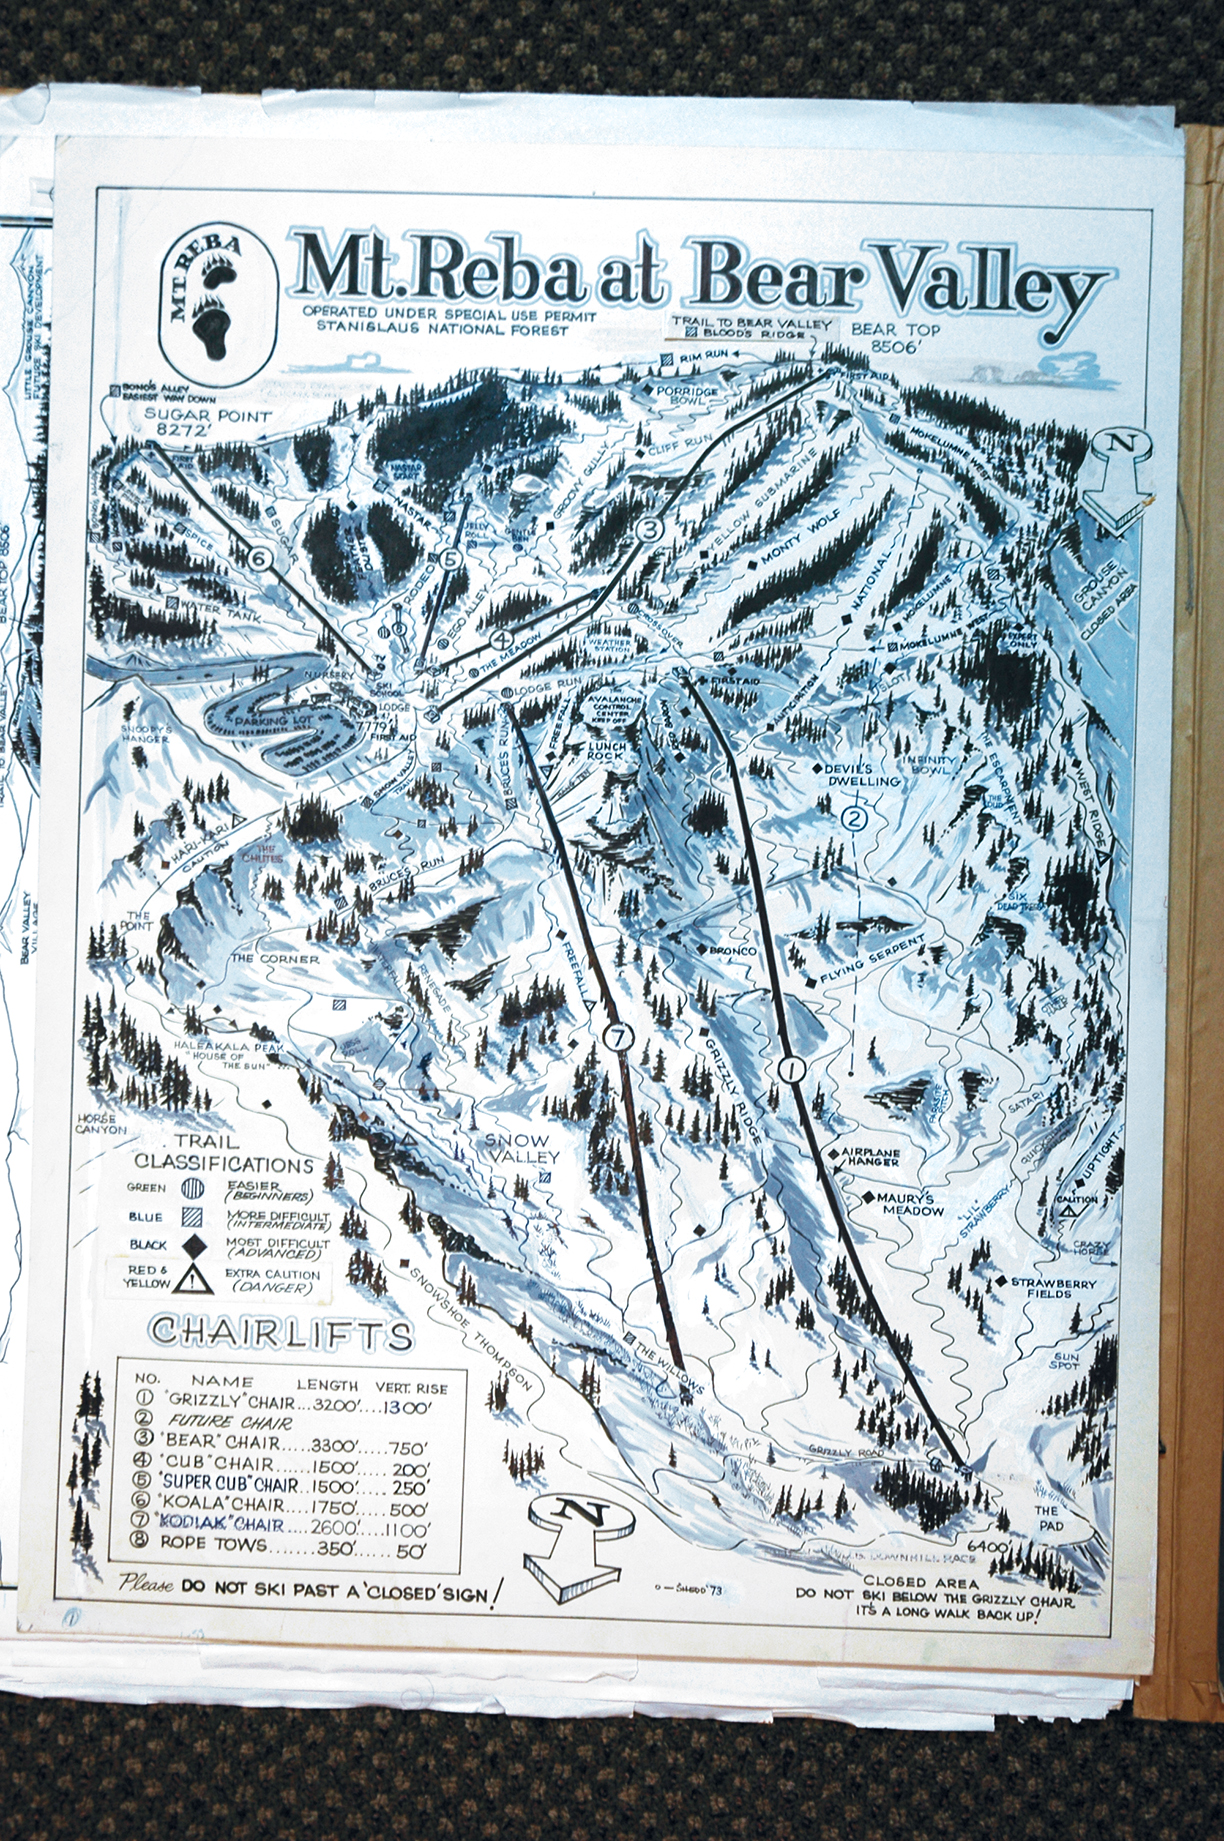 Mount Reba Ski Trail Map by Bob Shedd